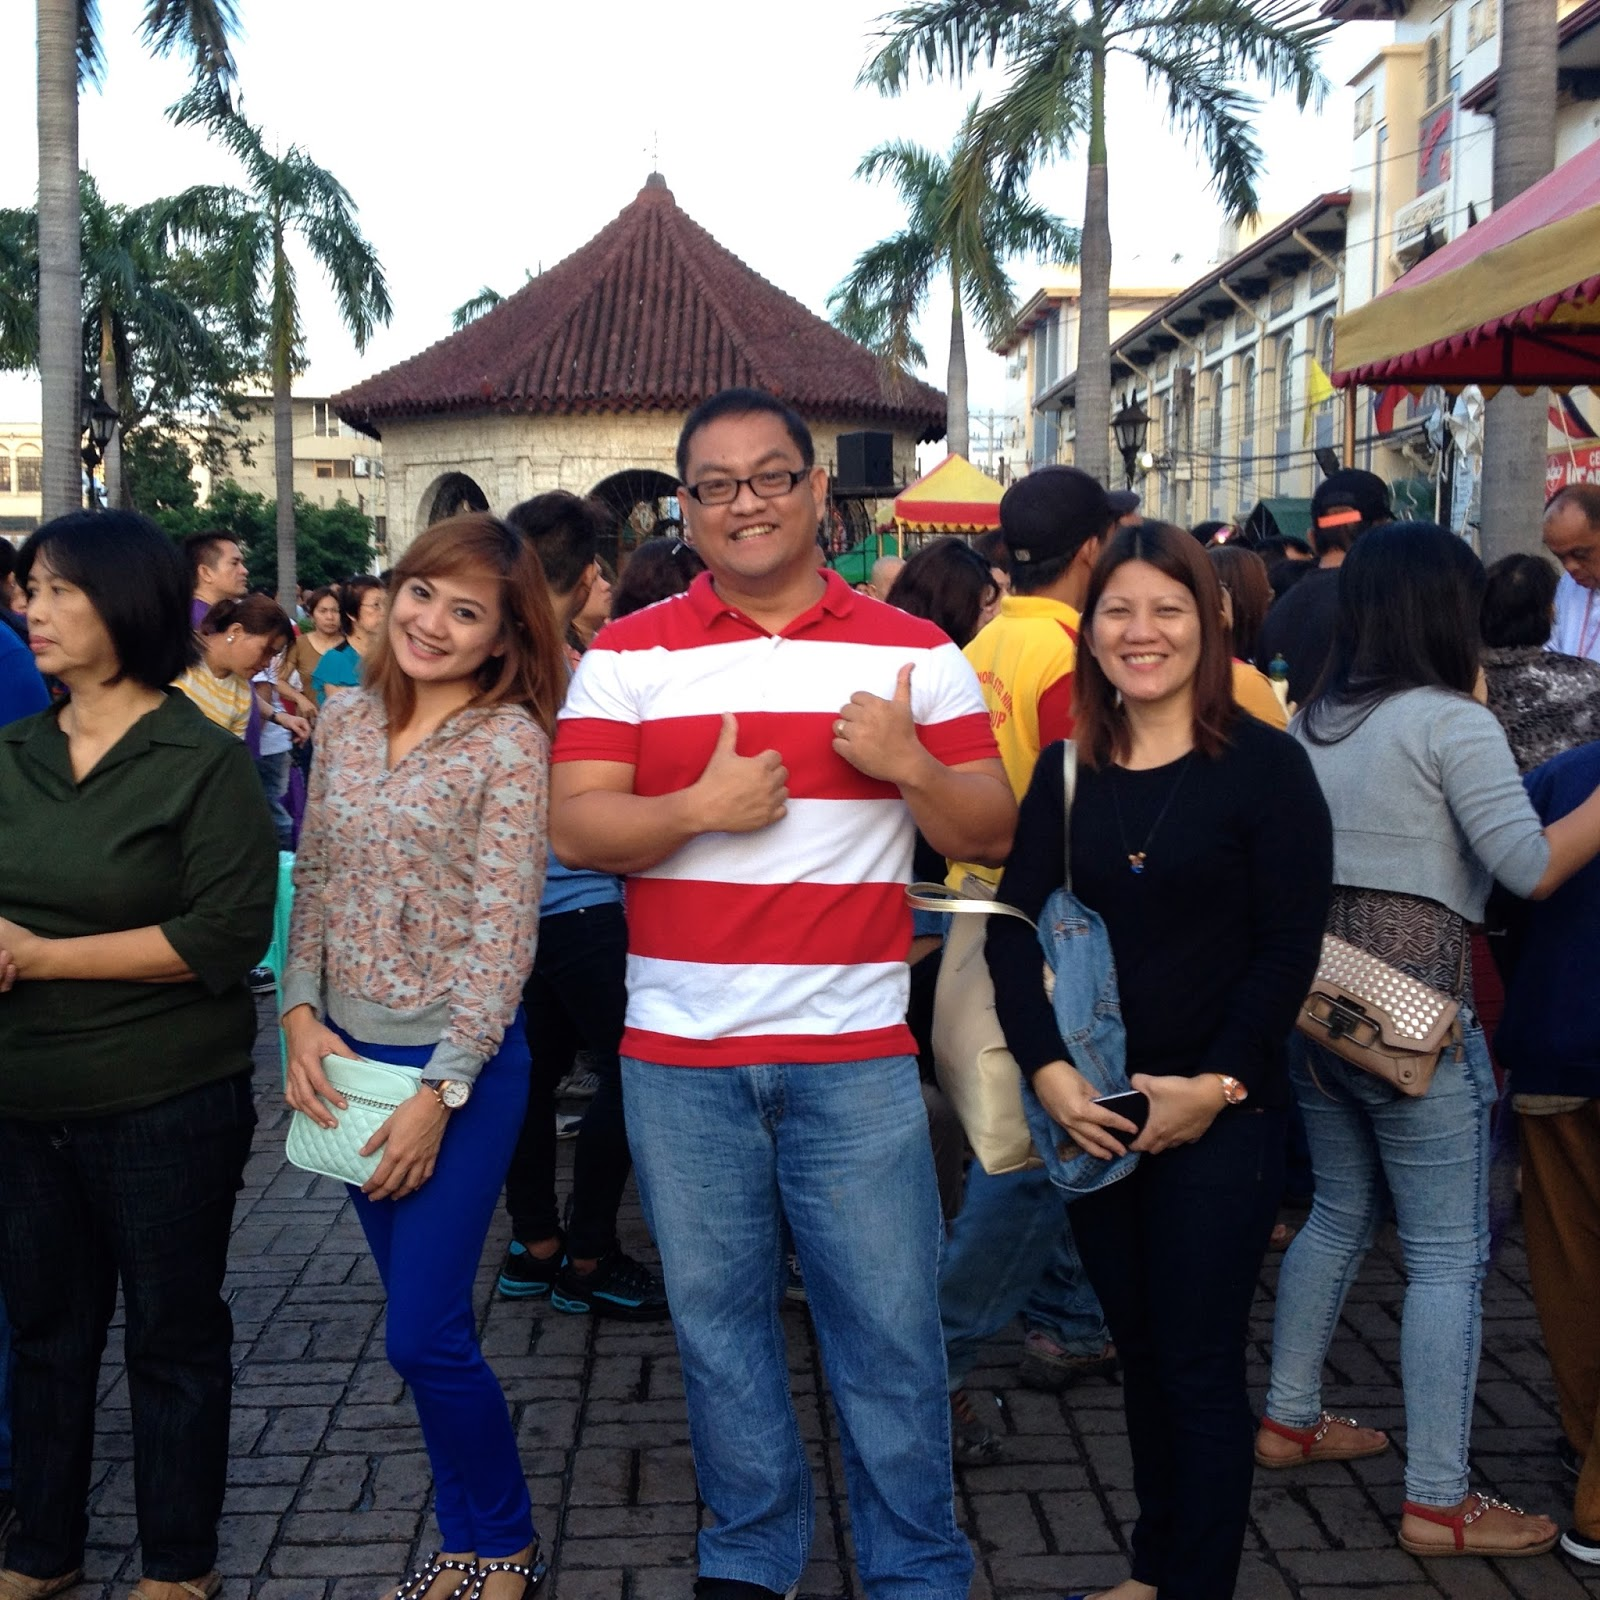 Visiting Cebu's Magellan's Cross